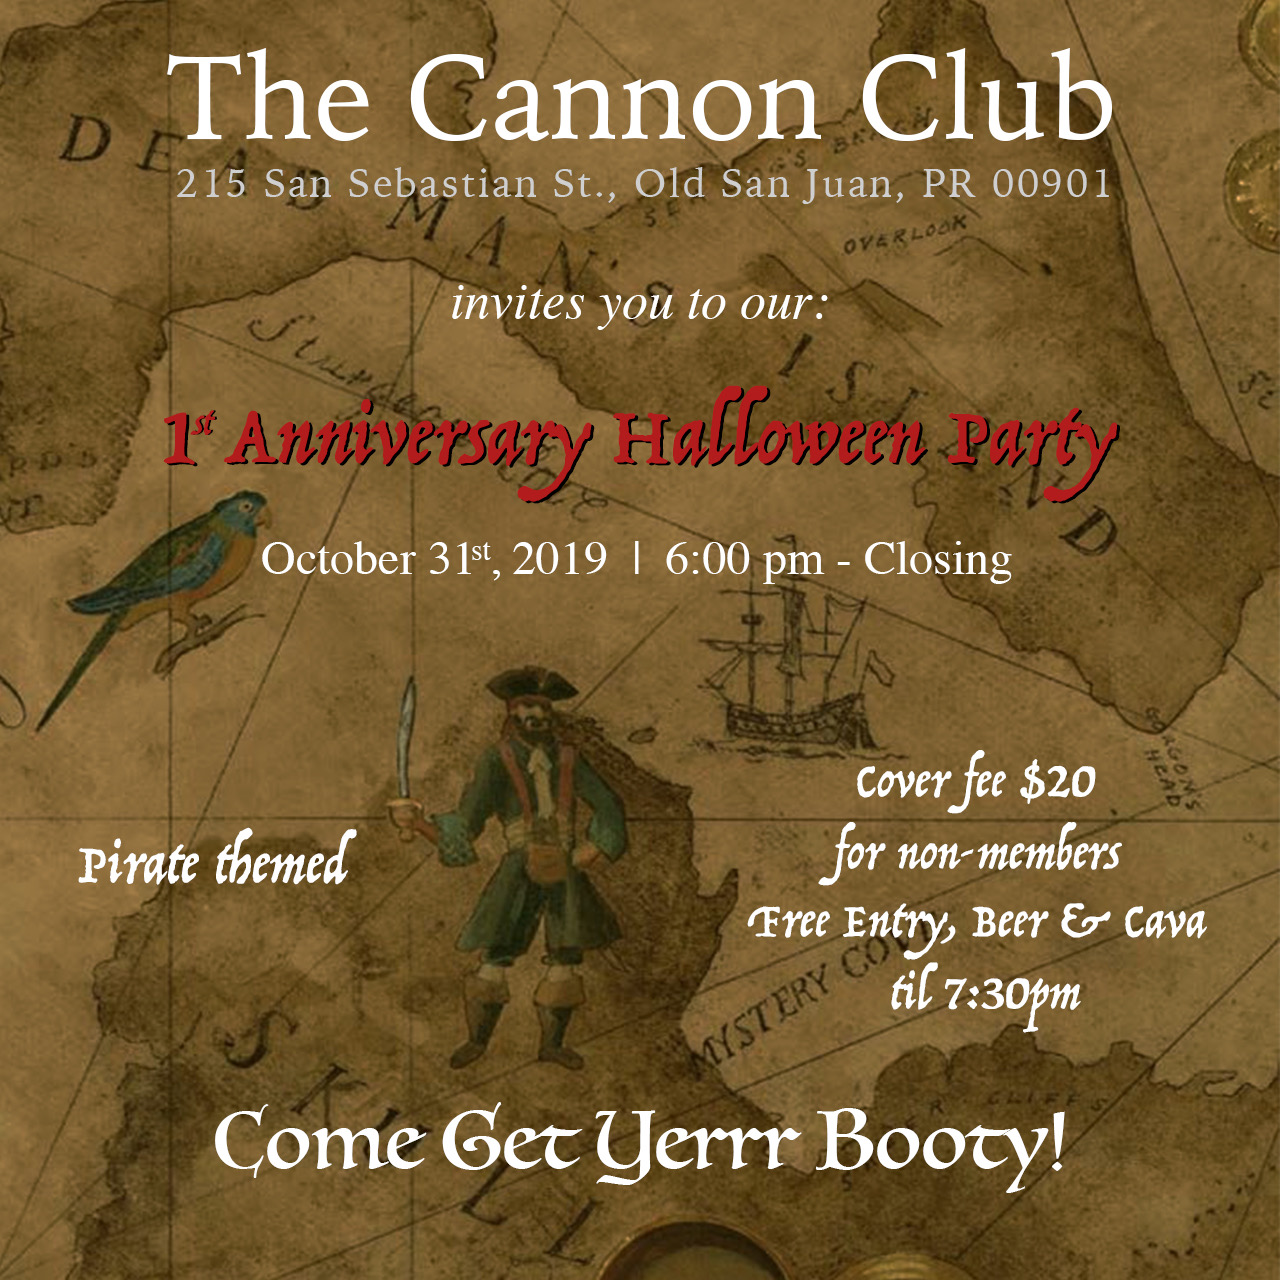 1st Anniversary Halloween Party!